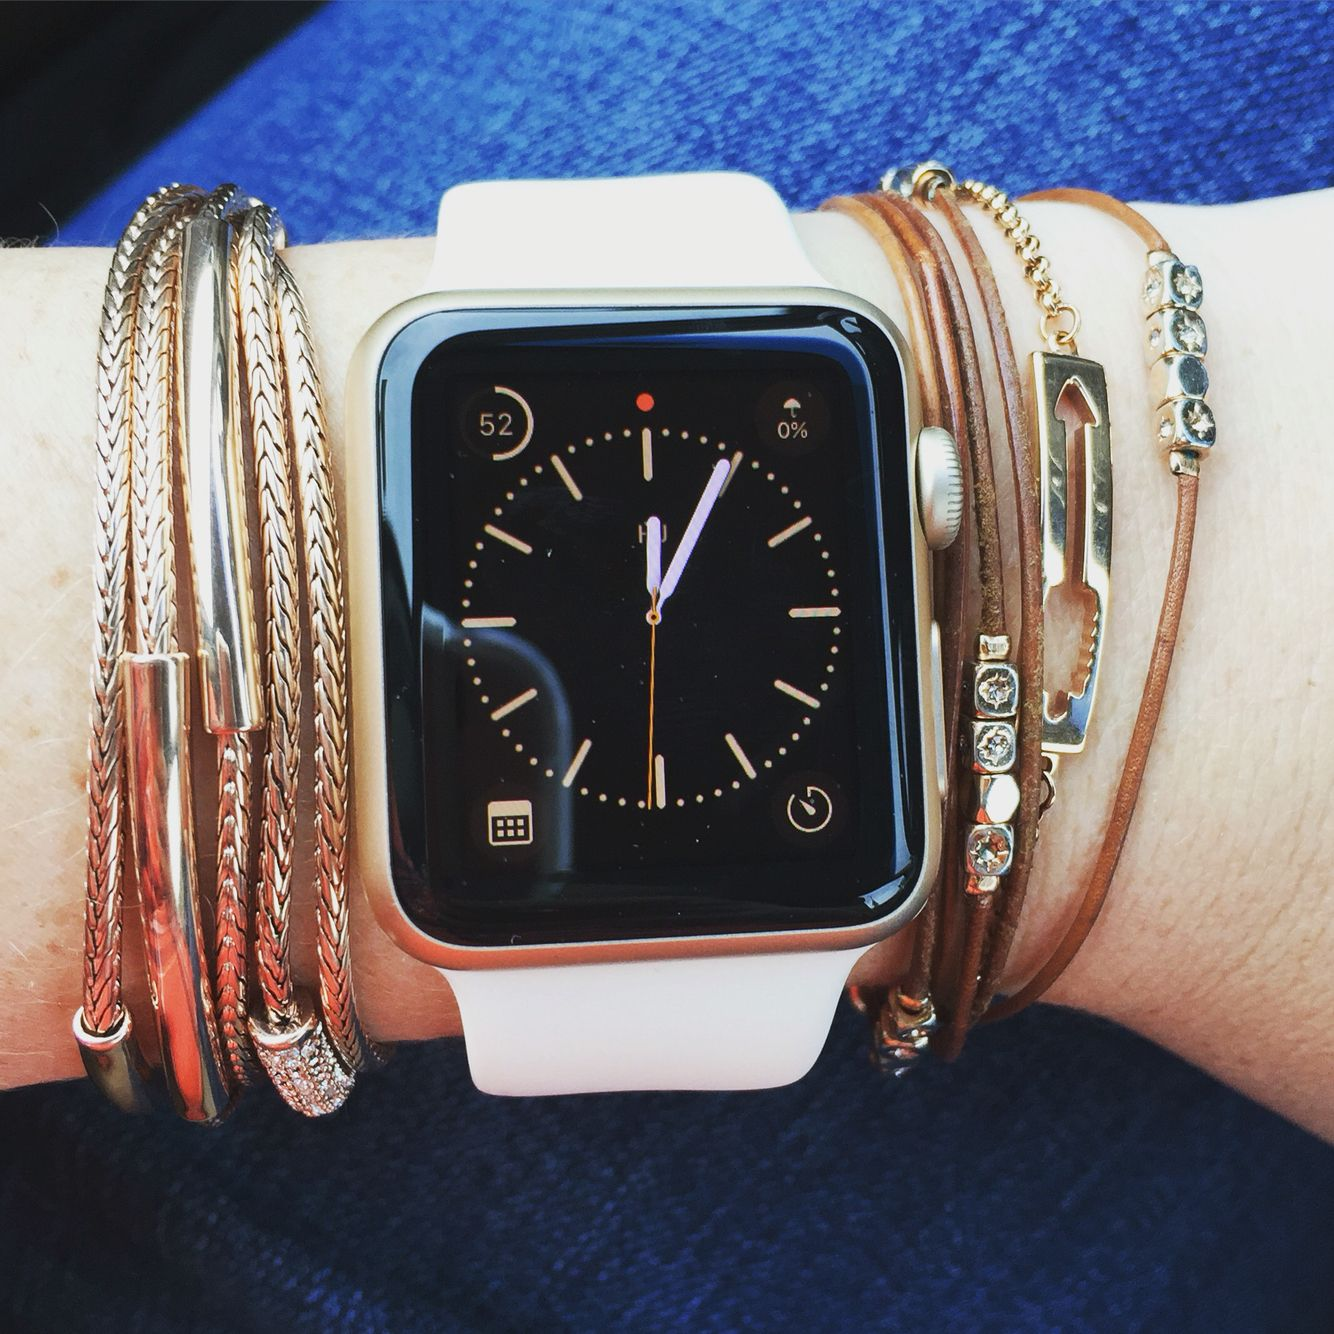 Watch bracelet is not only a device for reflecting time, but also a stylish fashion accessory